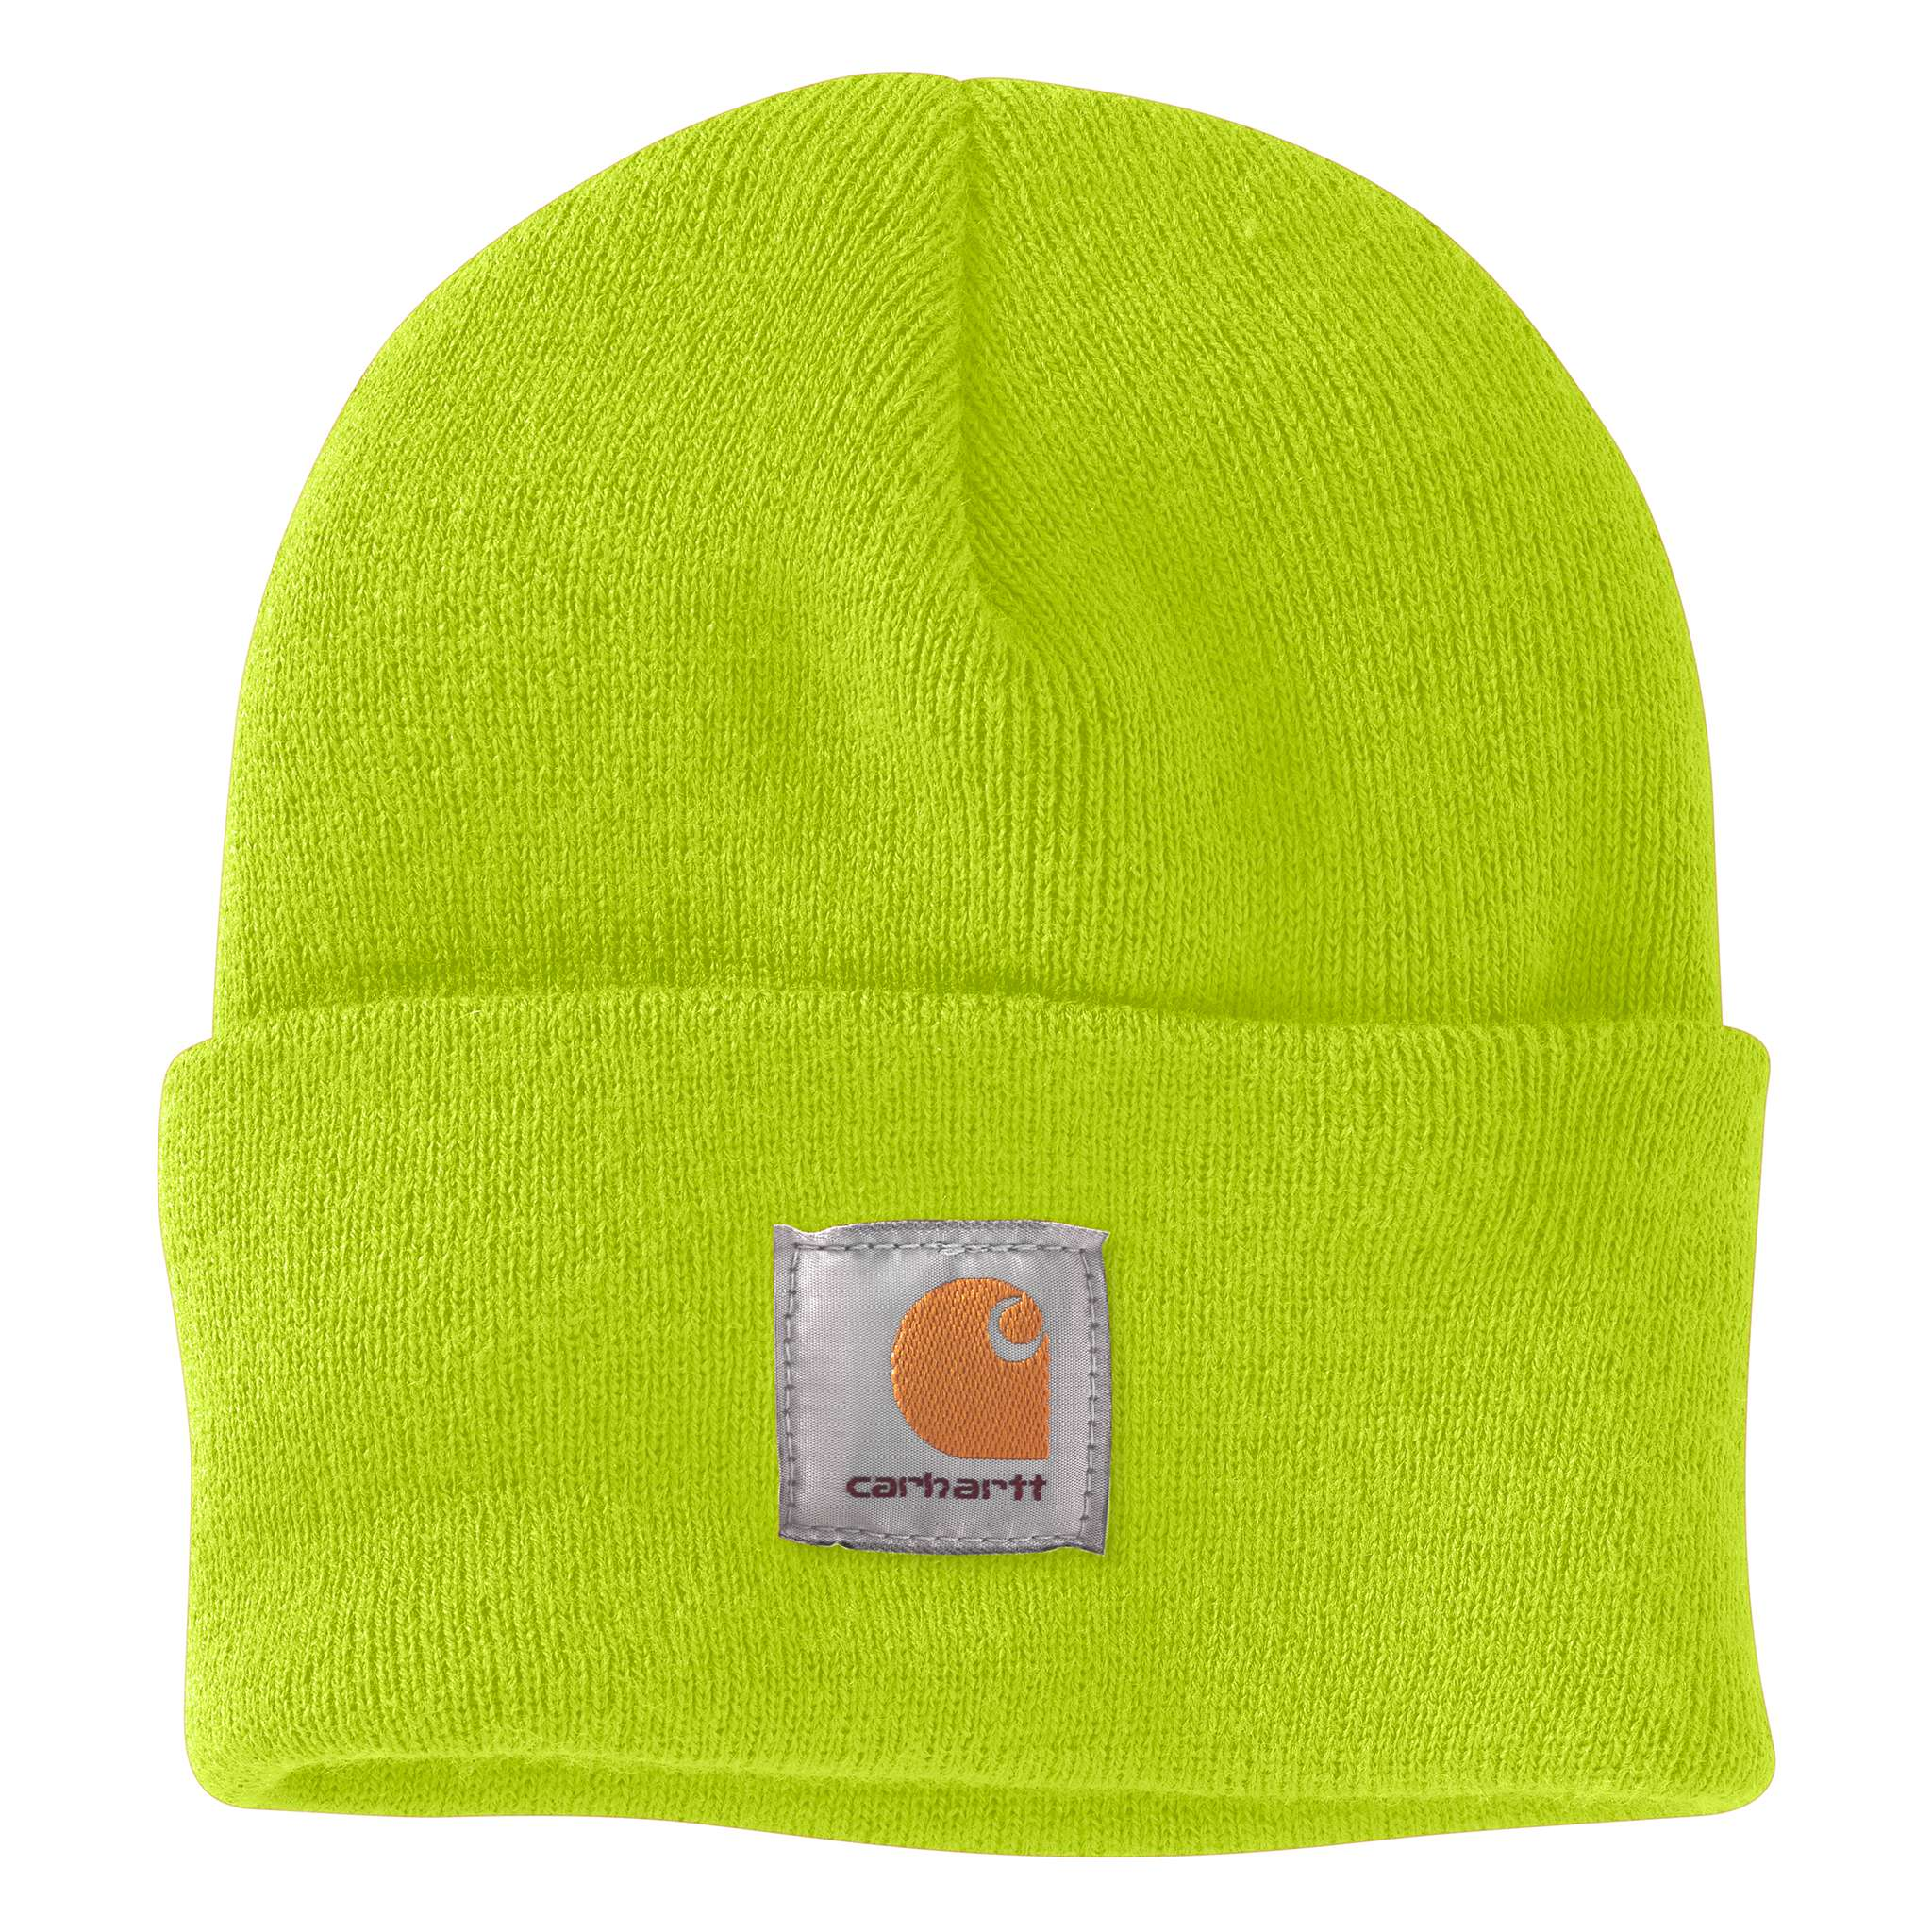 95e8115c69c ... Brite Lime Carhartt beanie with Carhartt label stitched on front ·  Brite Orange ...